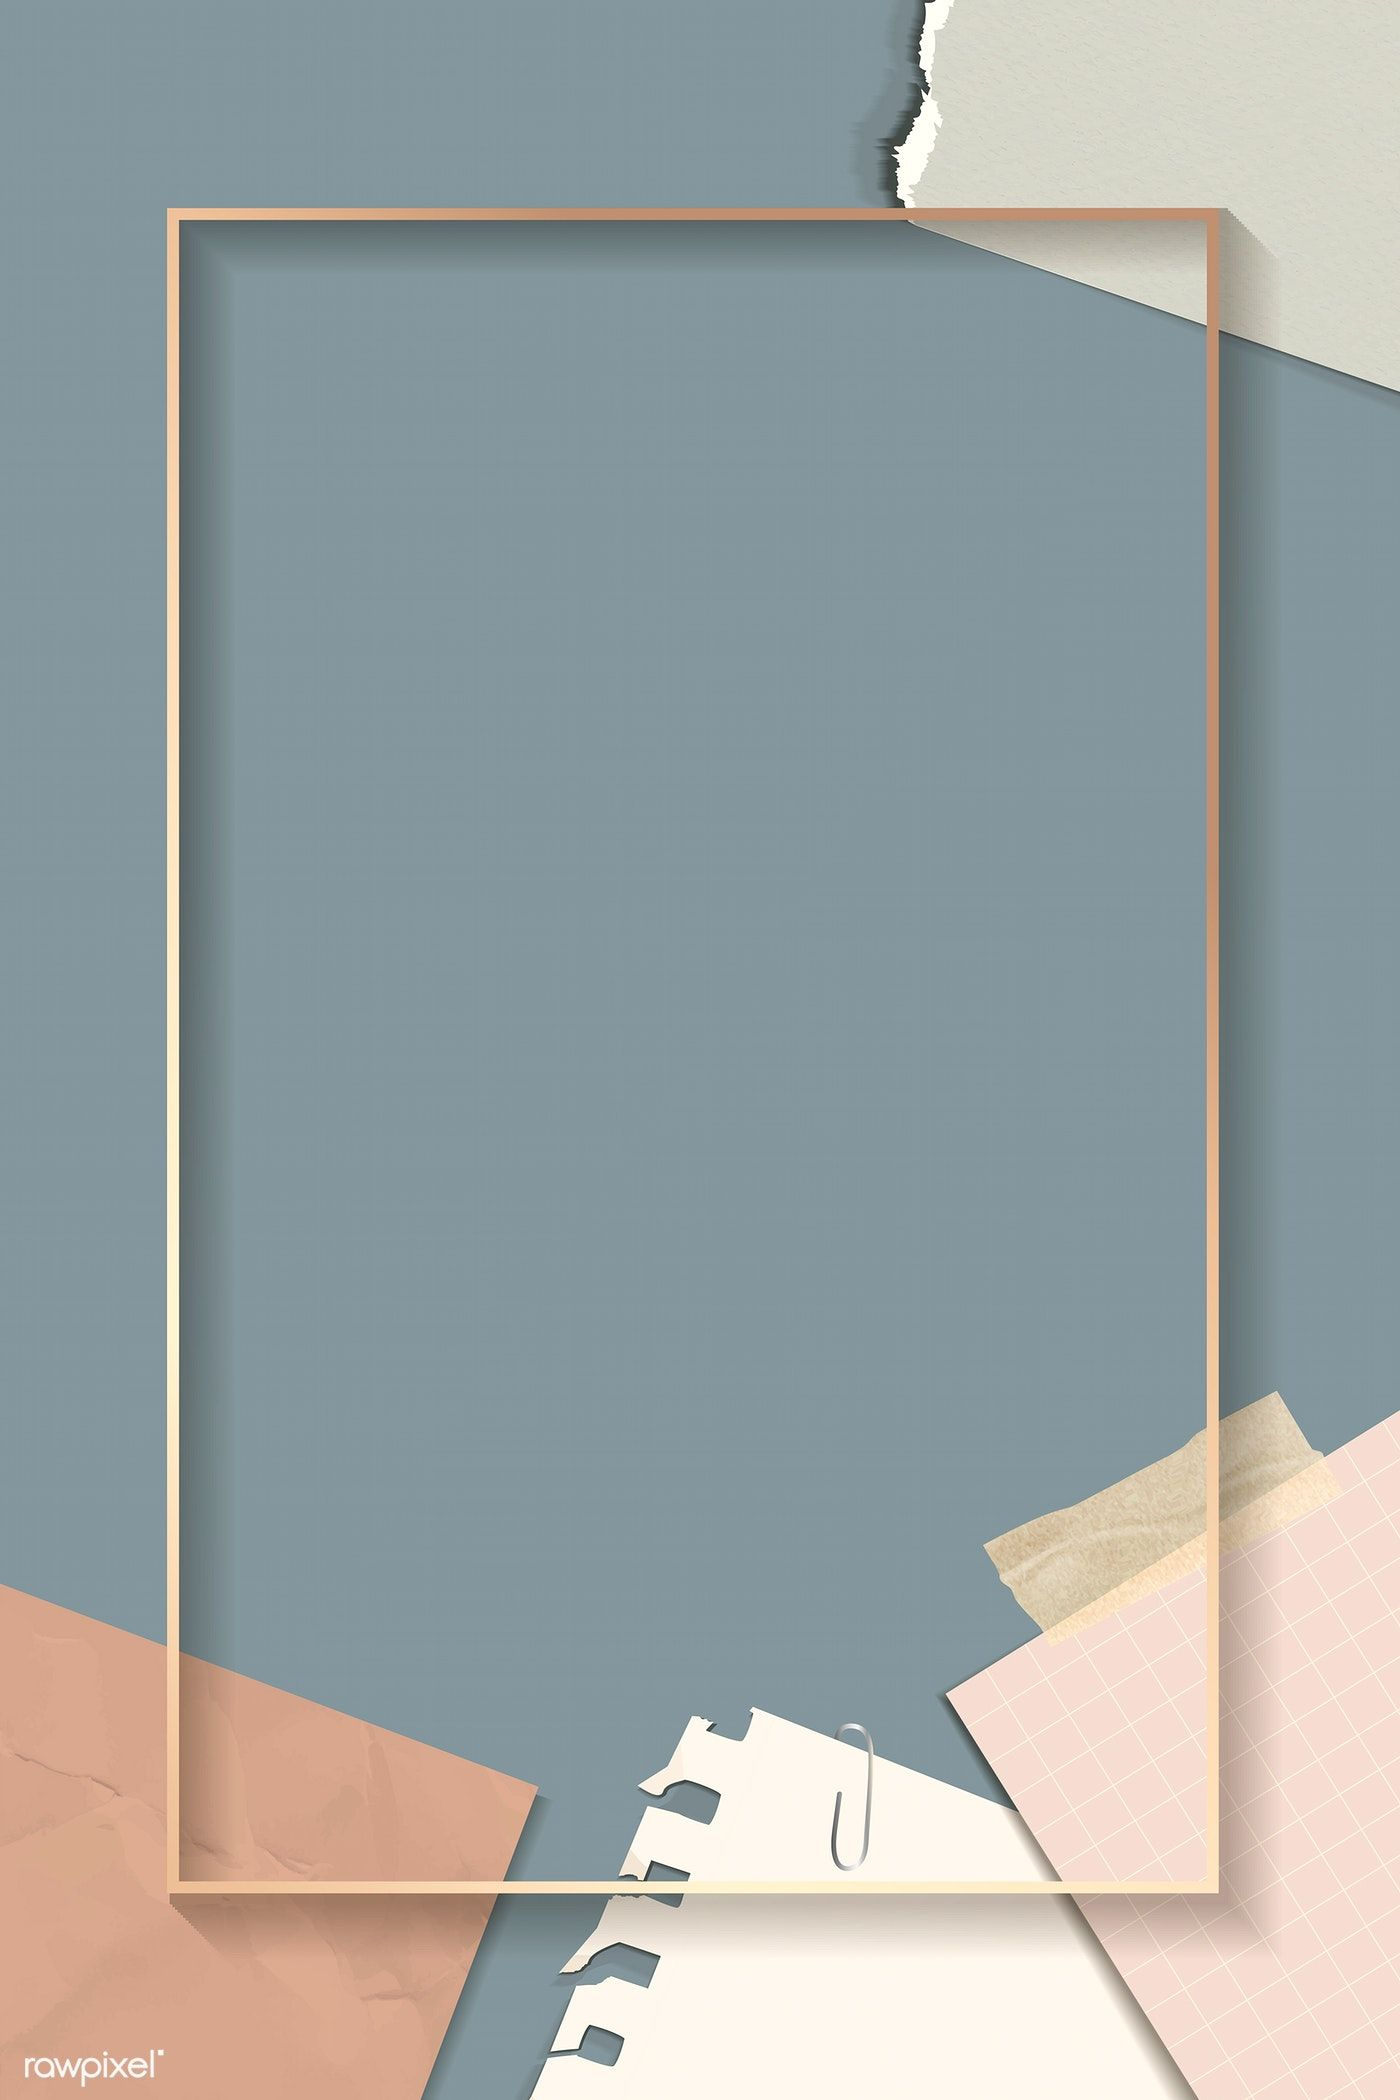 Download premium illustration of Ripped notes rectangle